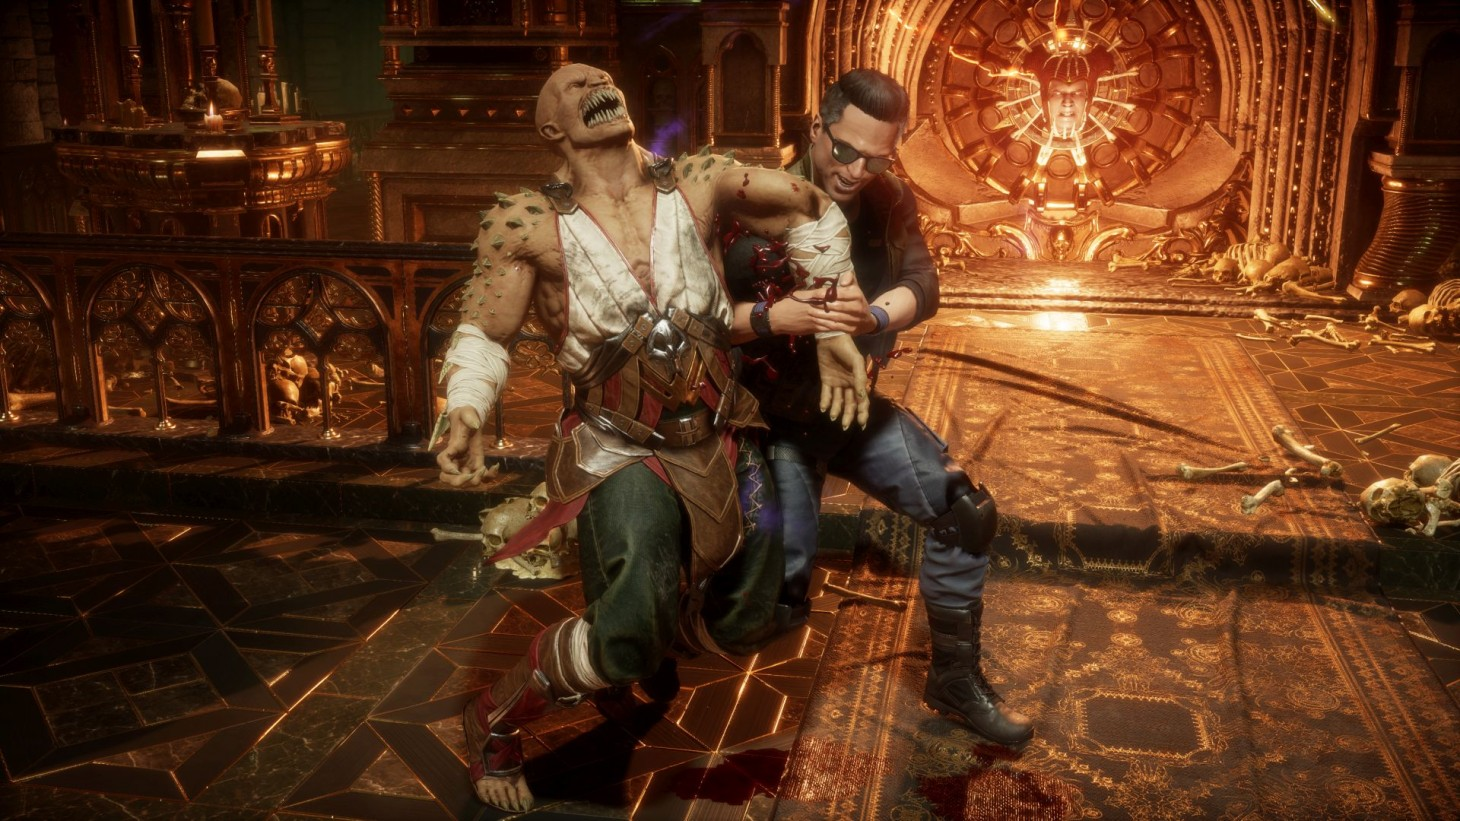 Mortal Kombat 11 Has Limited Tag Team Battles In Single-Player